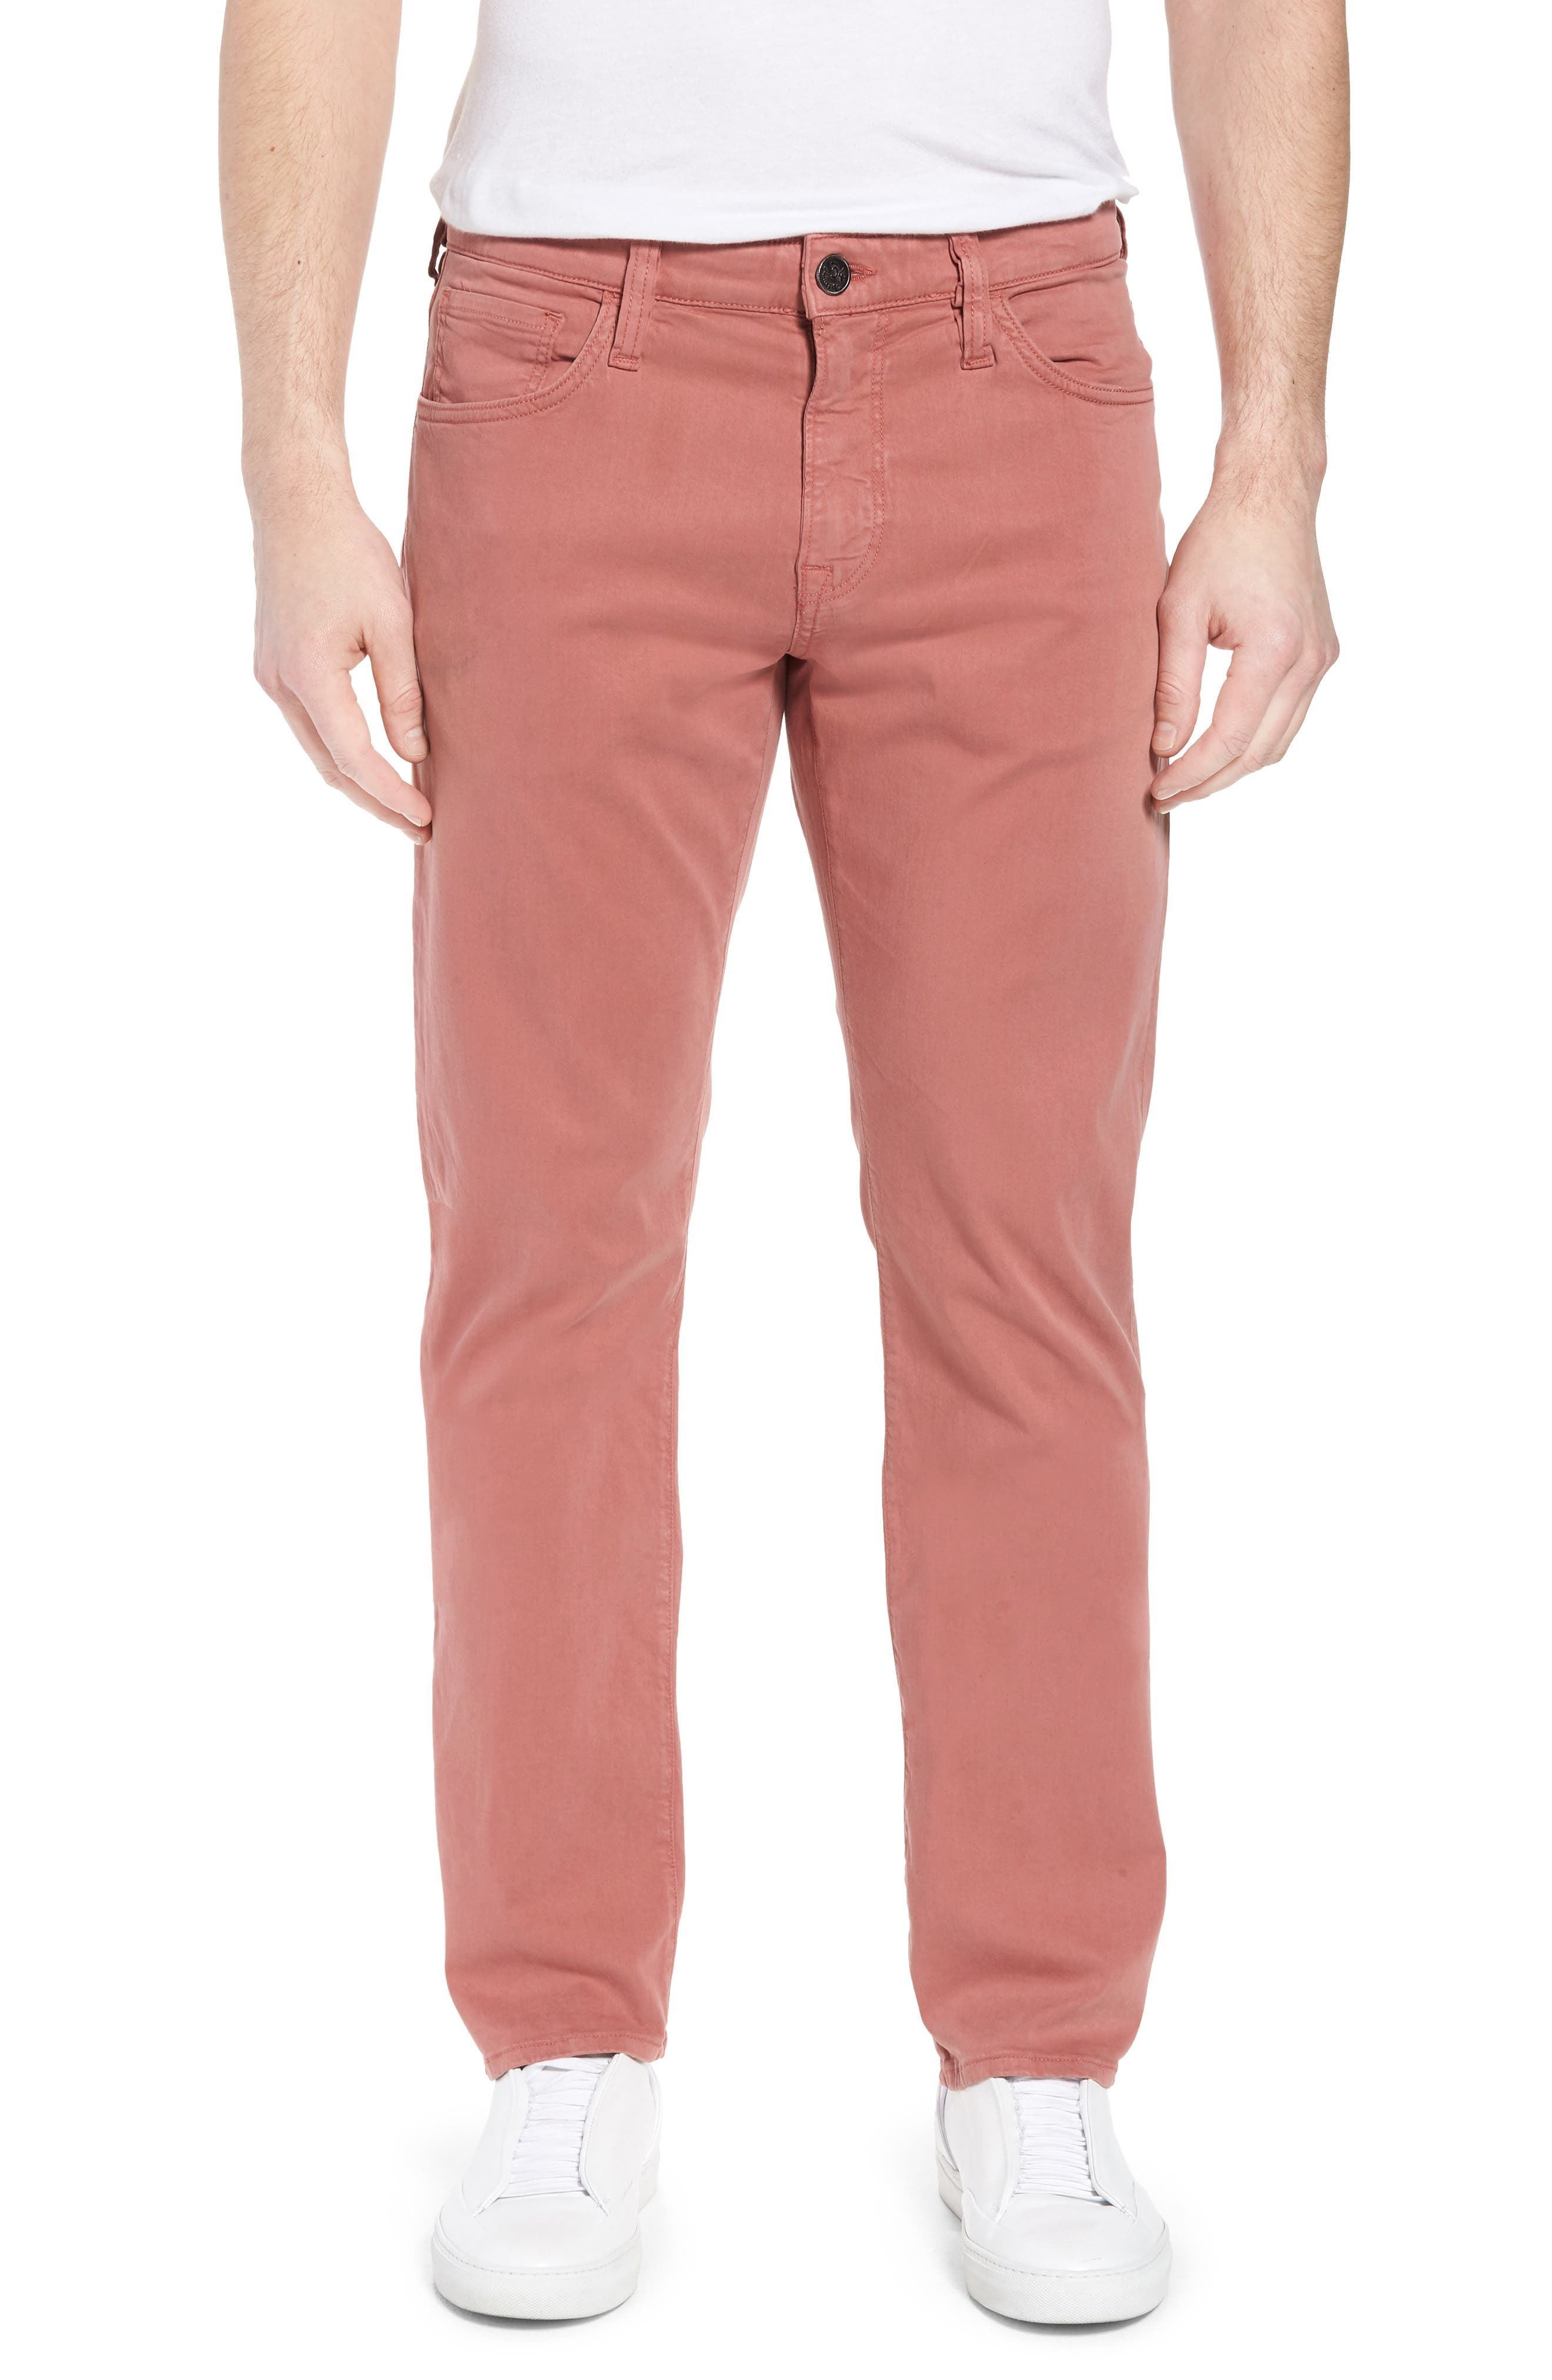 Courage Straight Leg Twill Pants,                         Main,                         color, Brick Twill